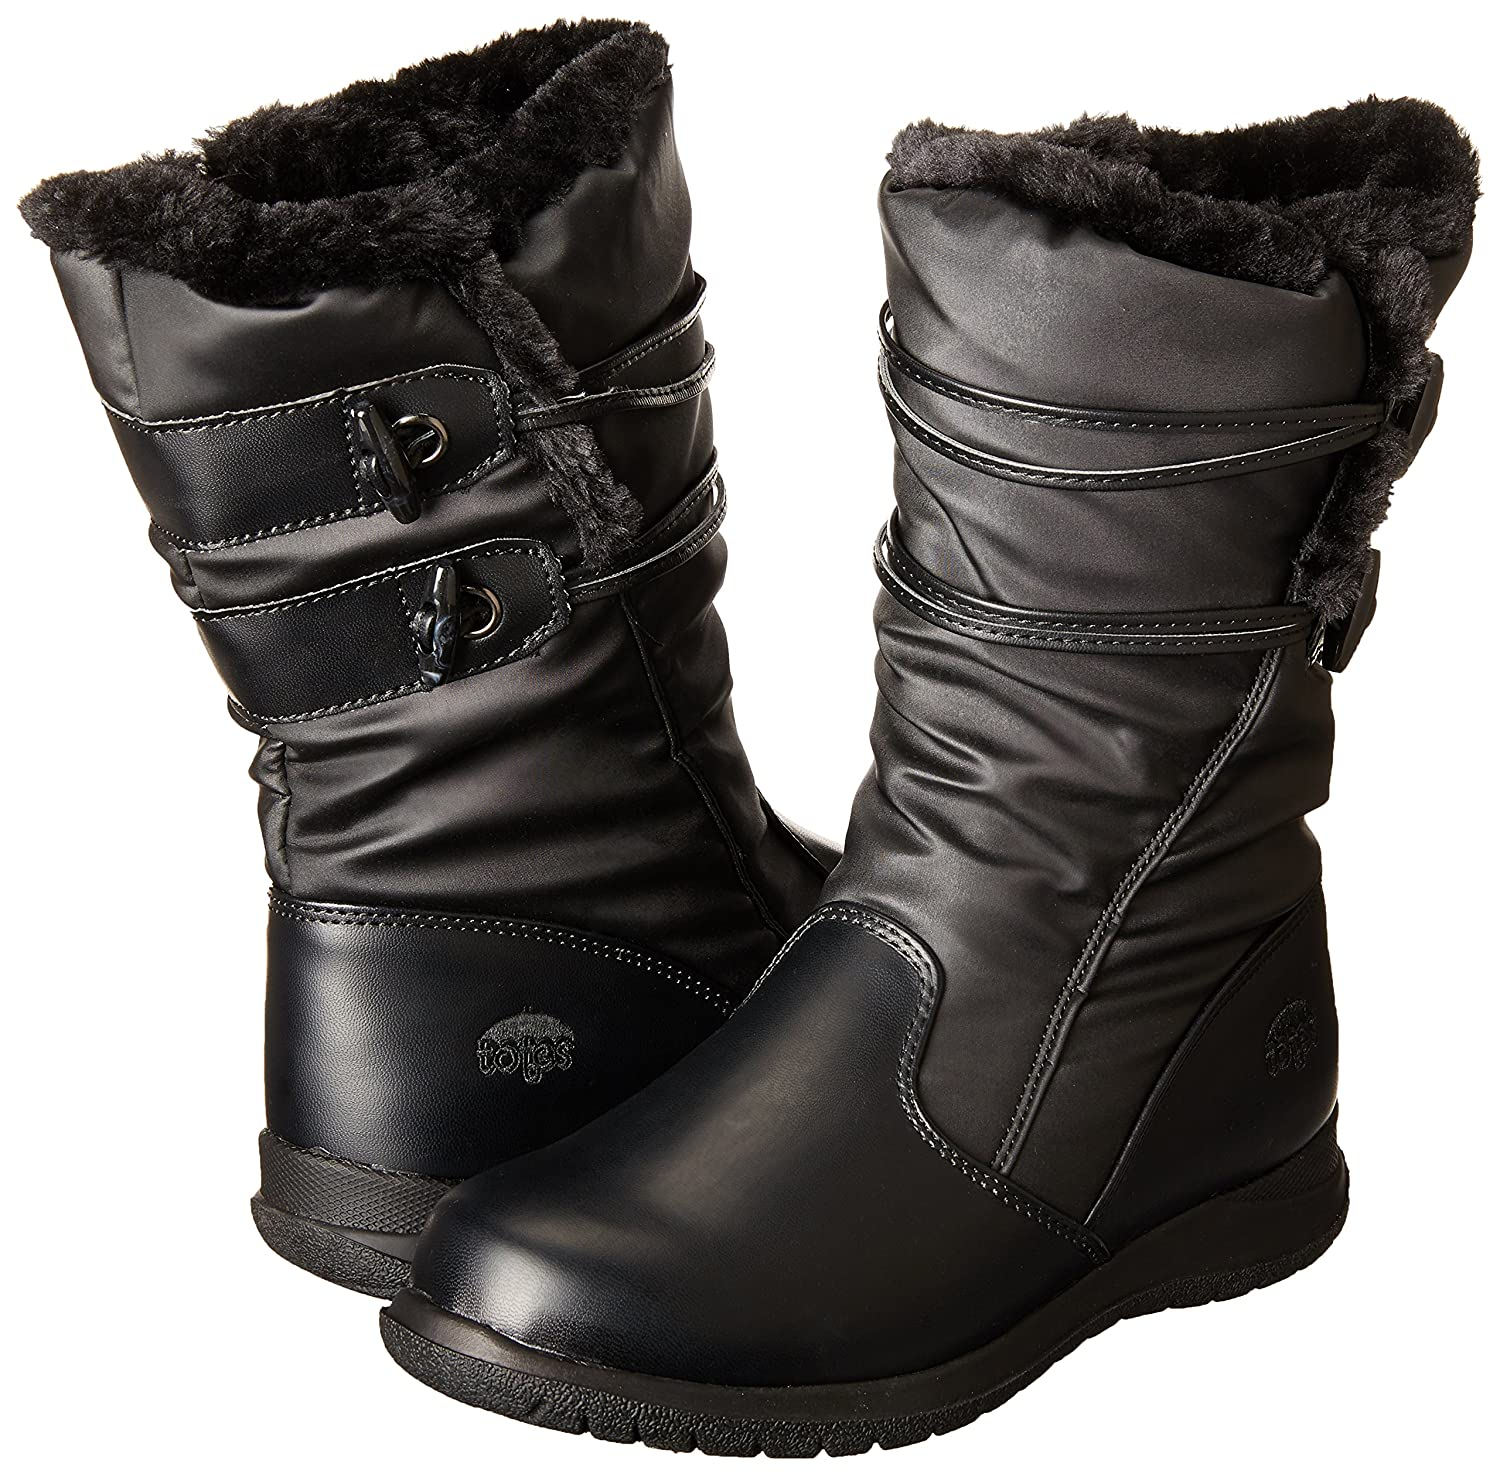 totes Women's Judy with Toggles Snow Boot B00GSG4966 6 B(M) US|Black